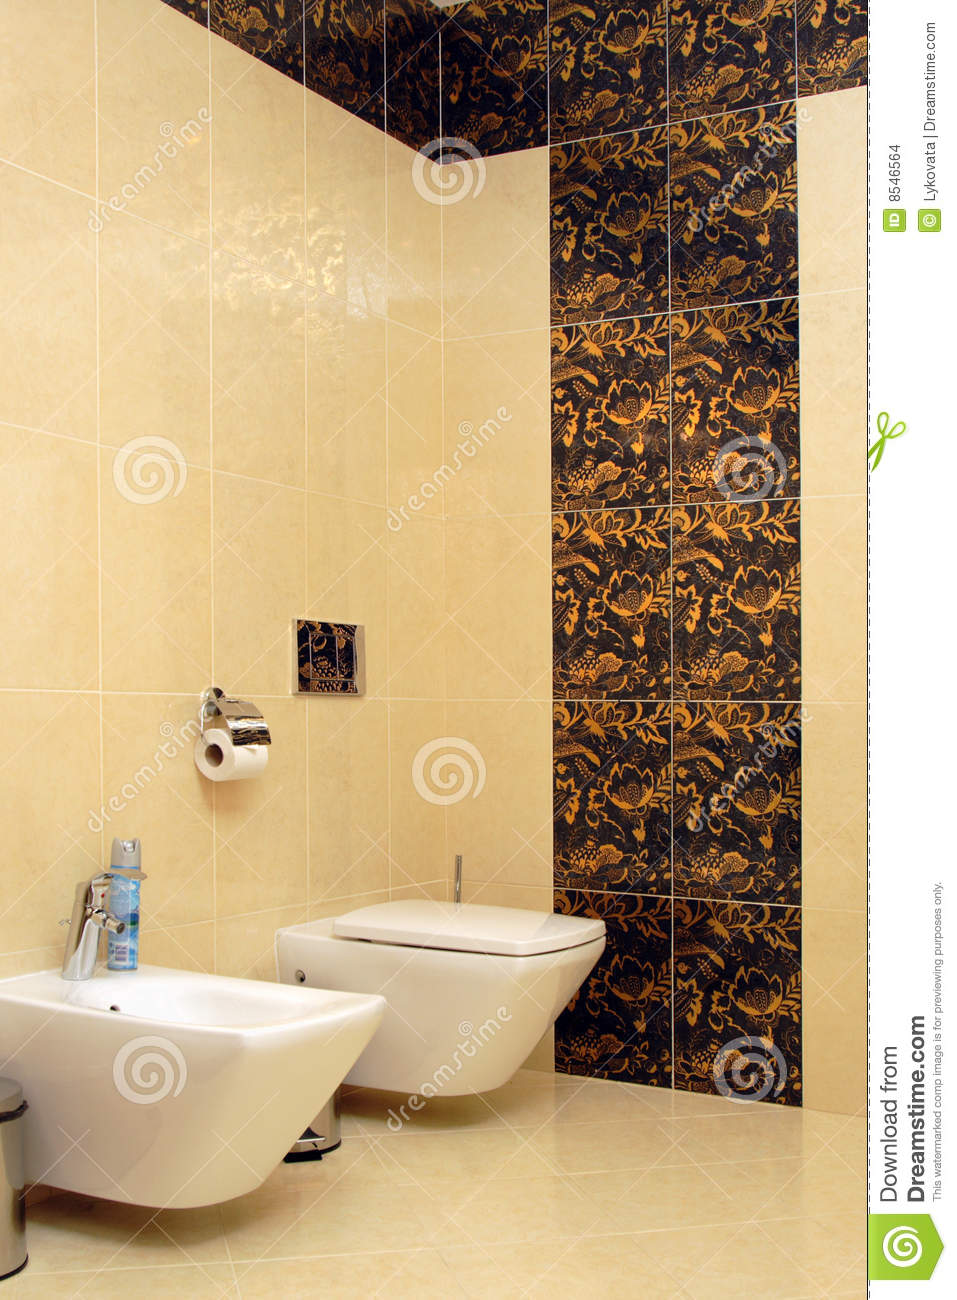 Luxury Bathroom With Toilet Sink And Bidet Stock Images  Image 8546564